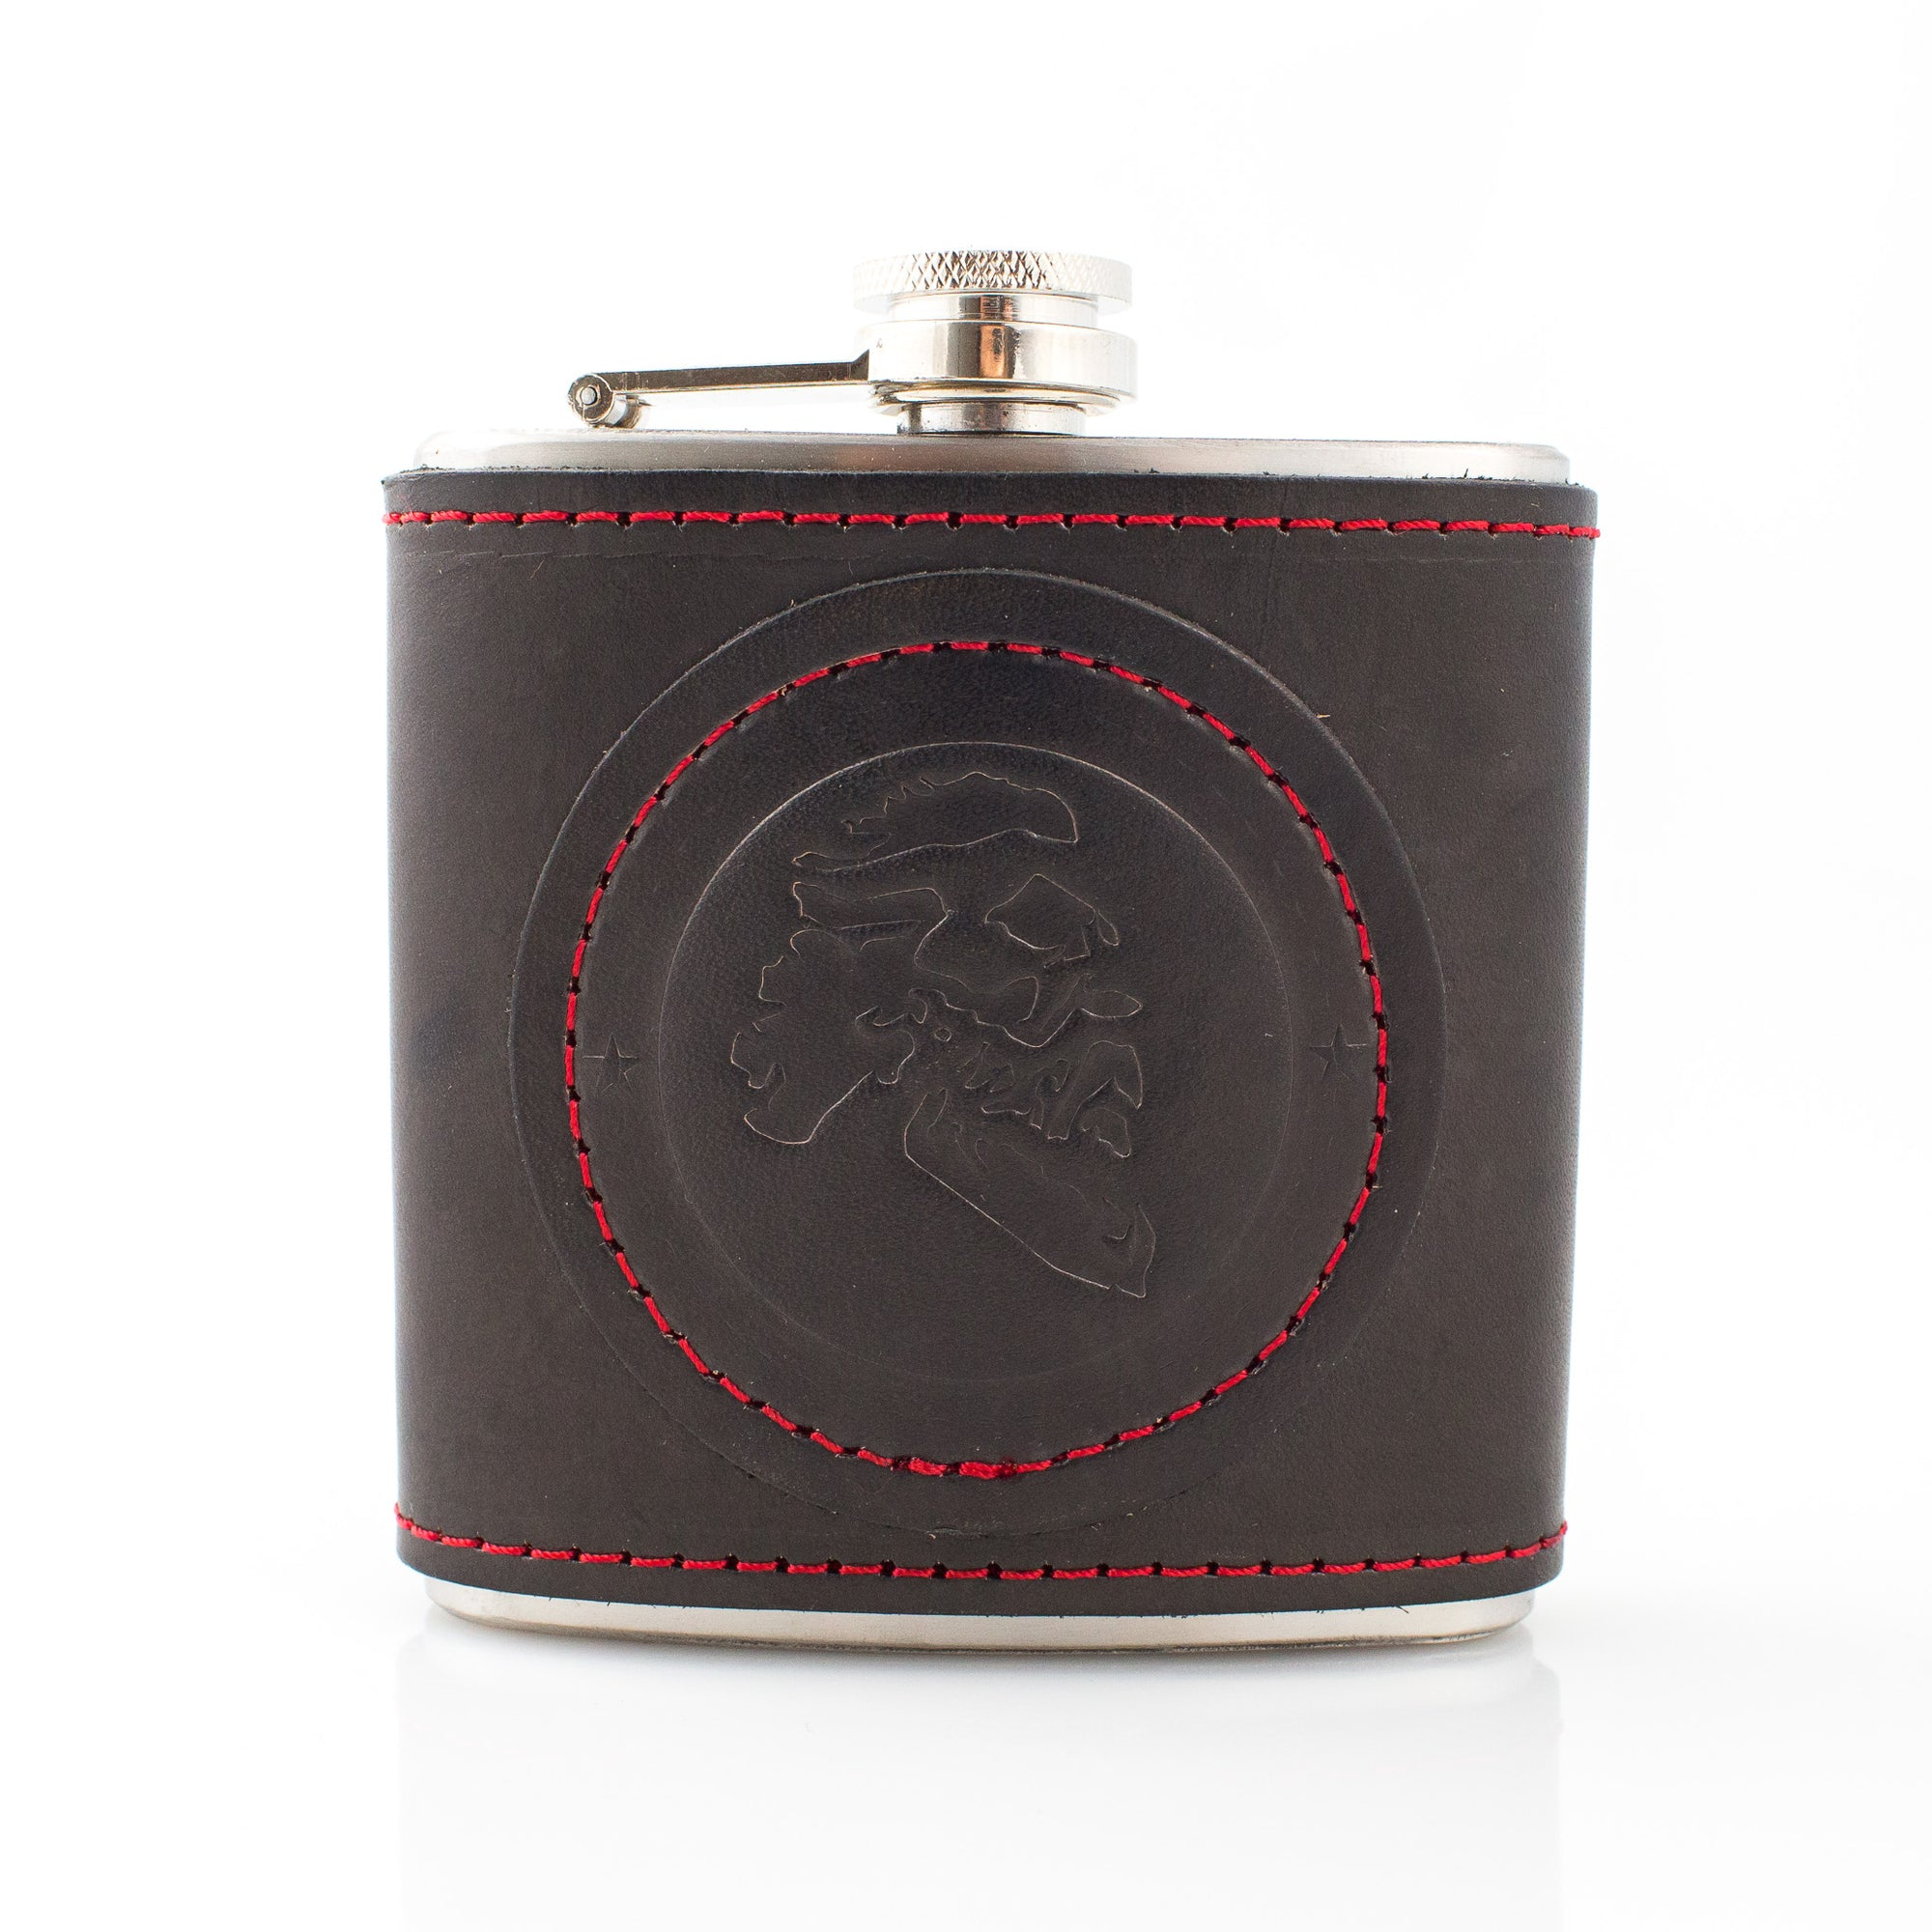 Maestro's Only - Leather Bound Flask